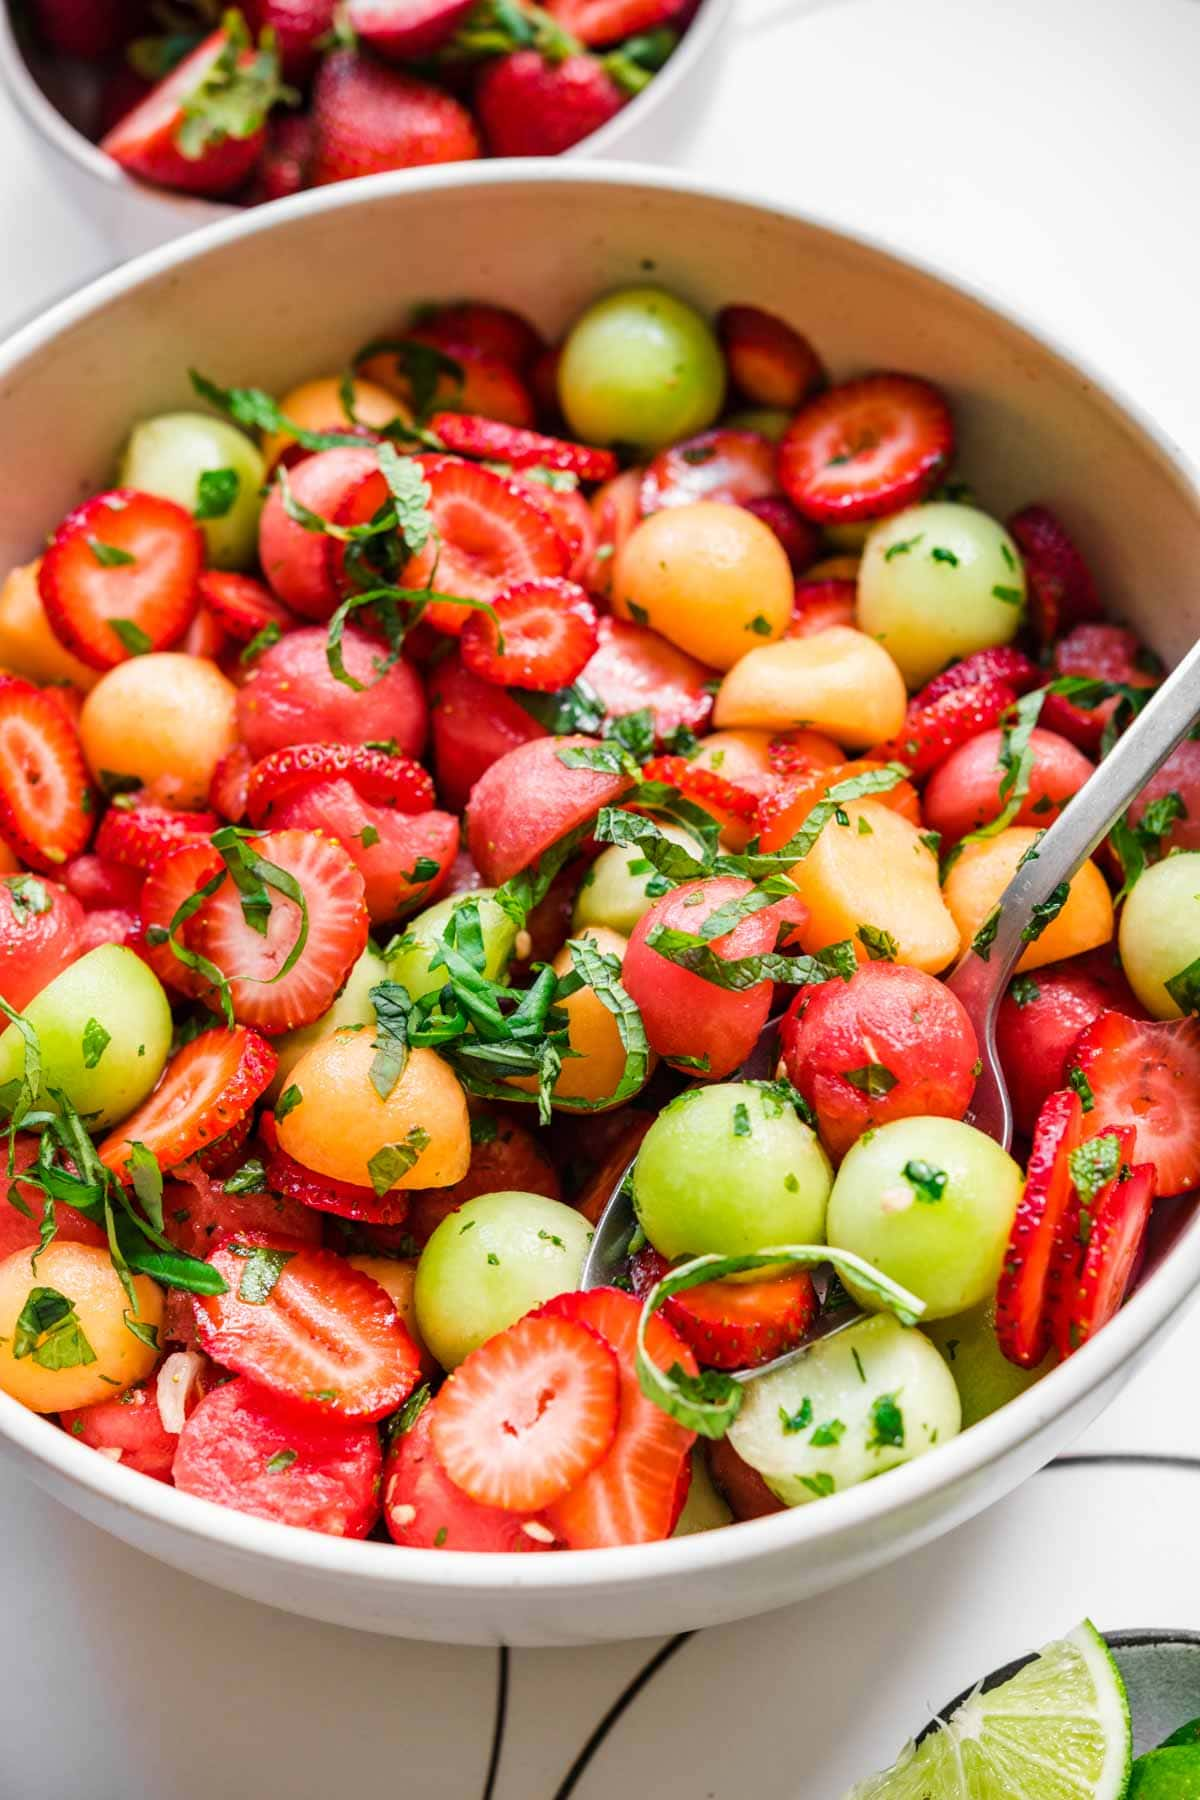 close up side view of melon ball salad with strawberries and mint in white bowl.